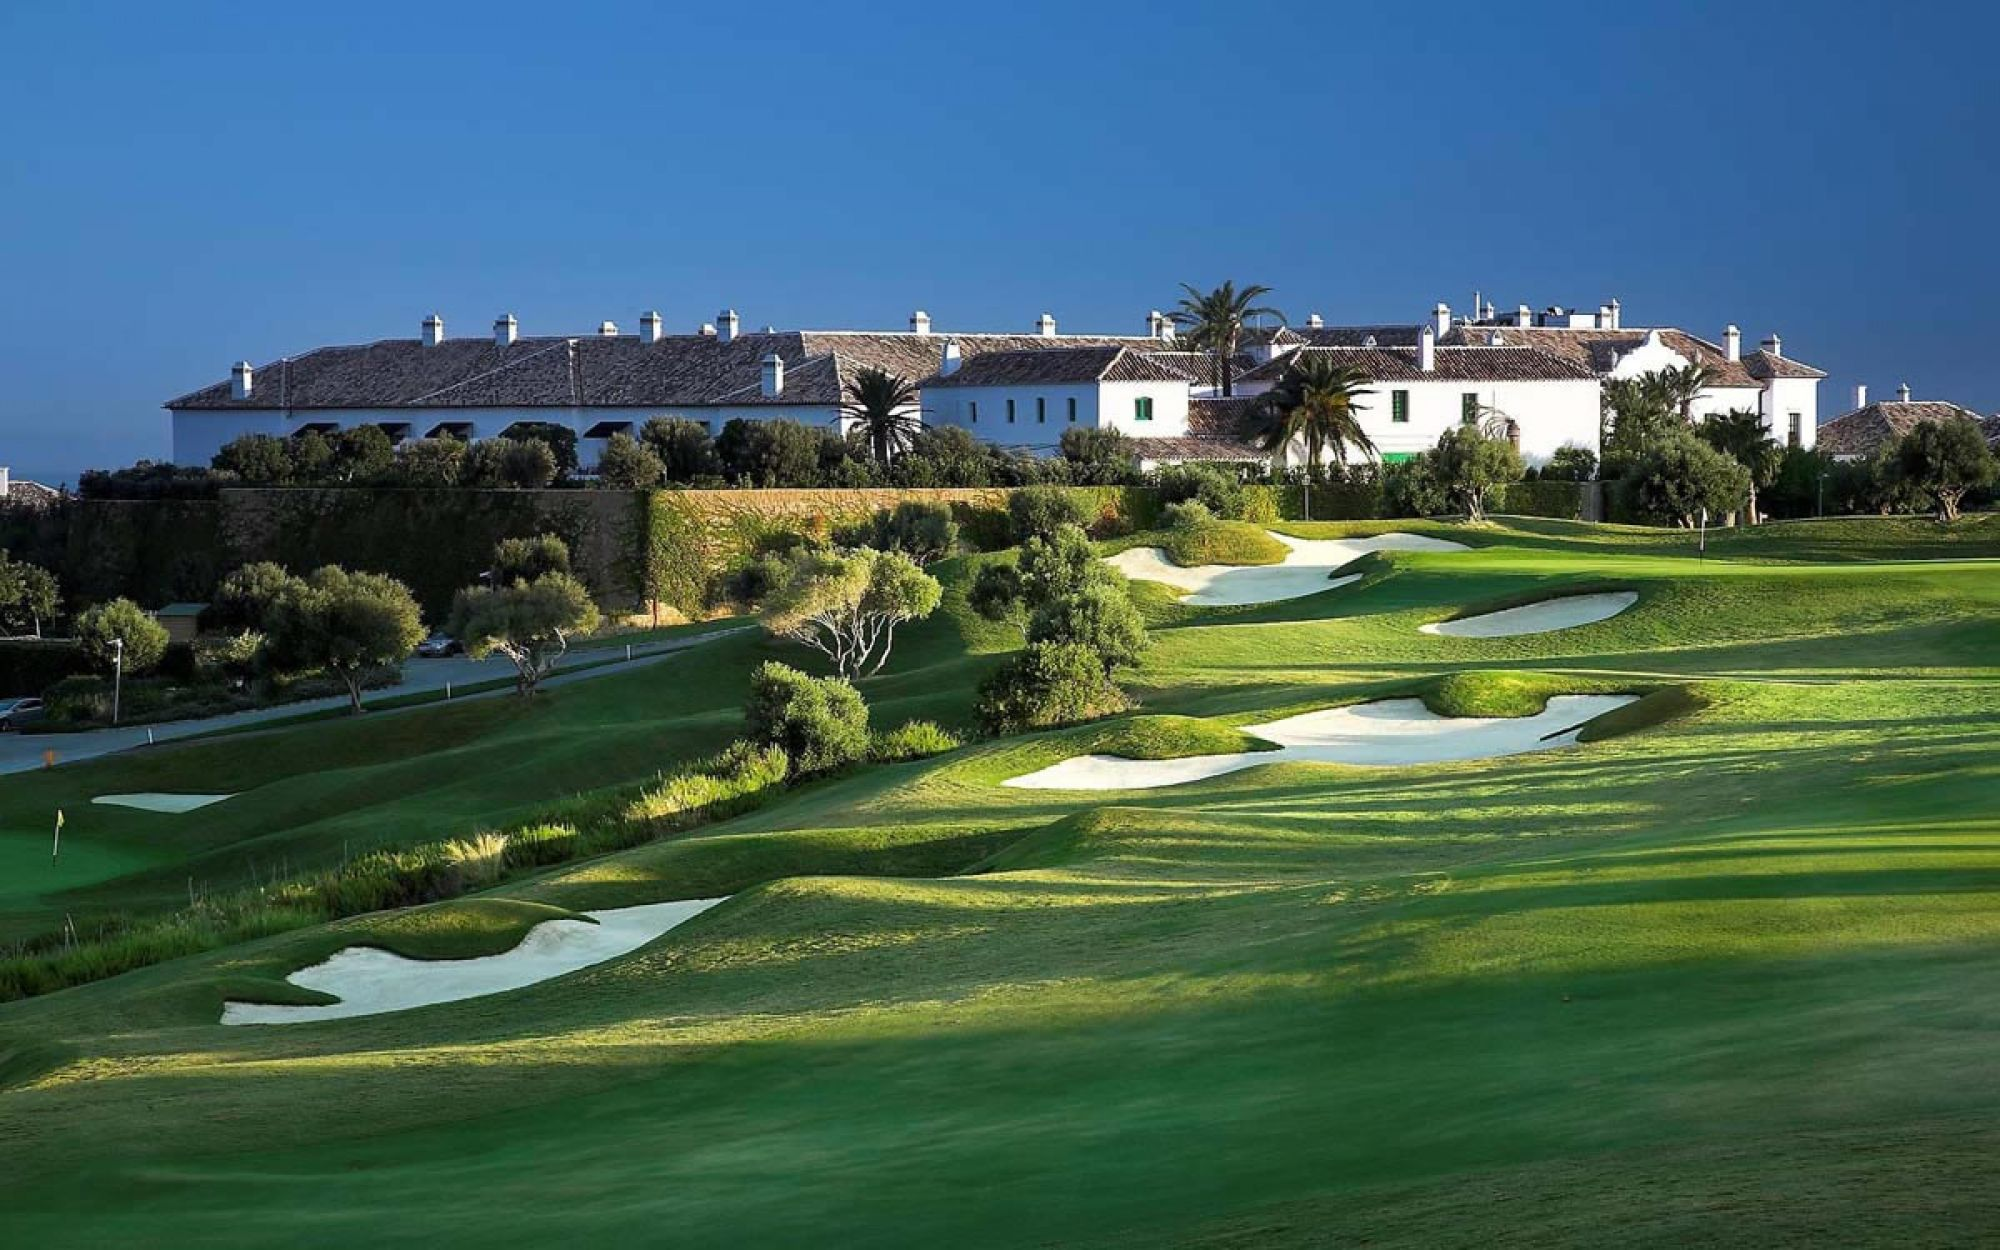 the 18th fairway at finca cortesin